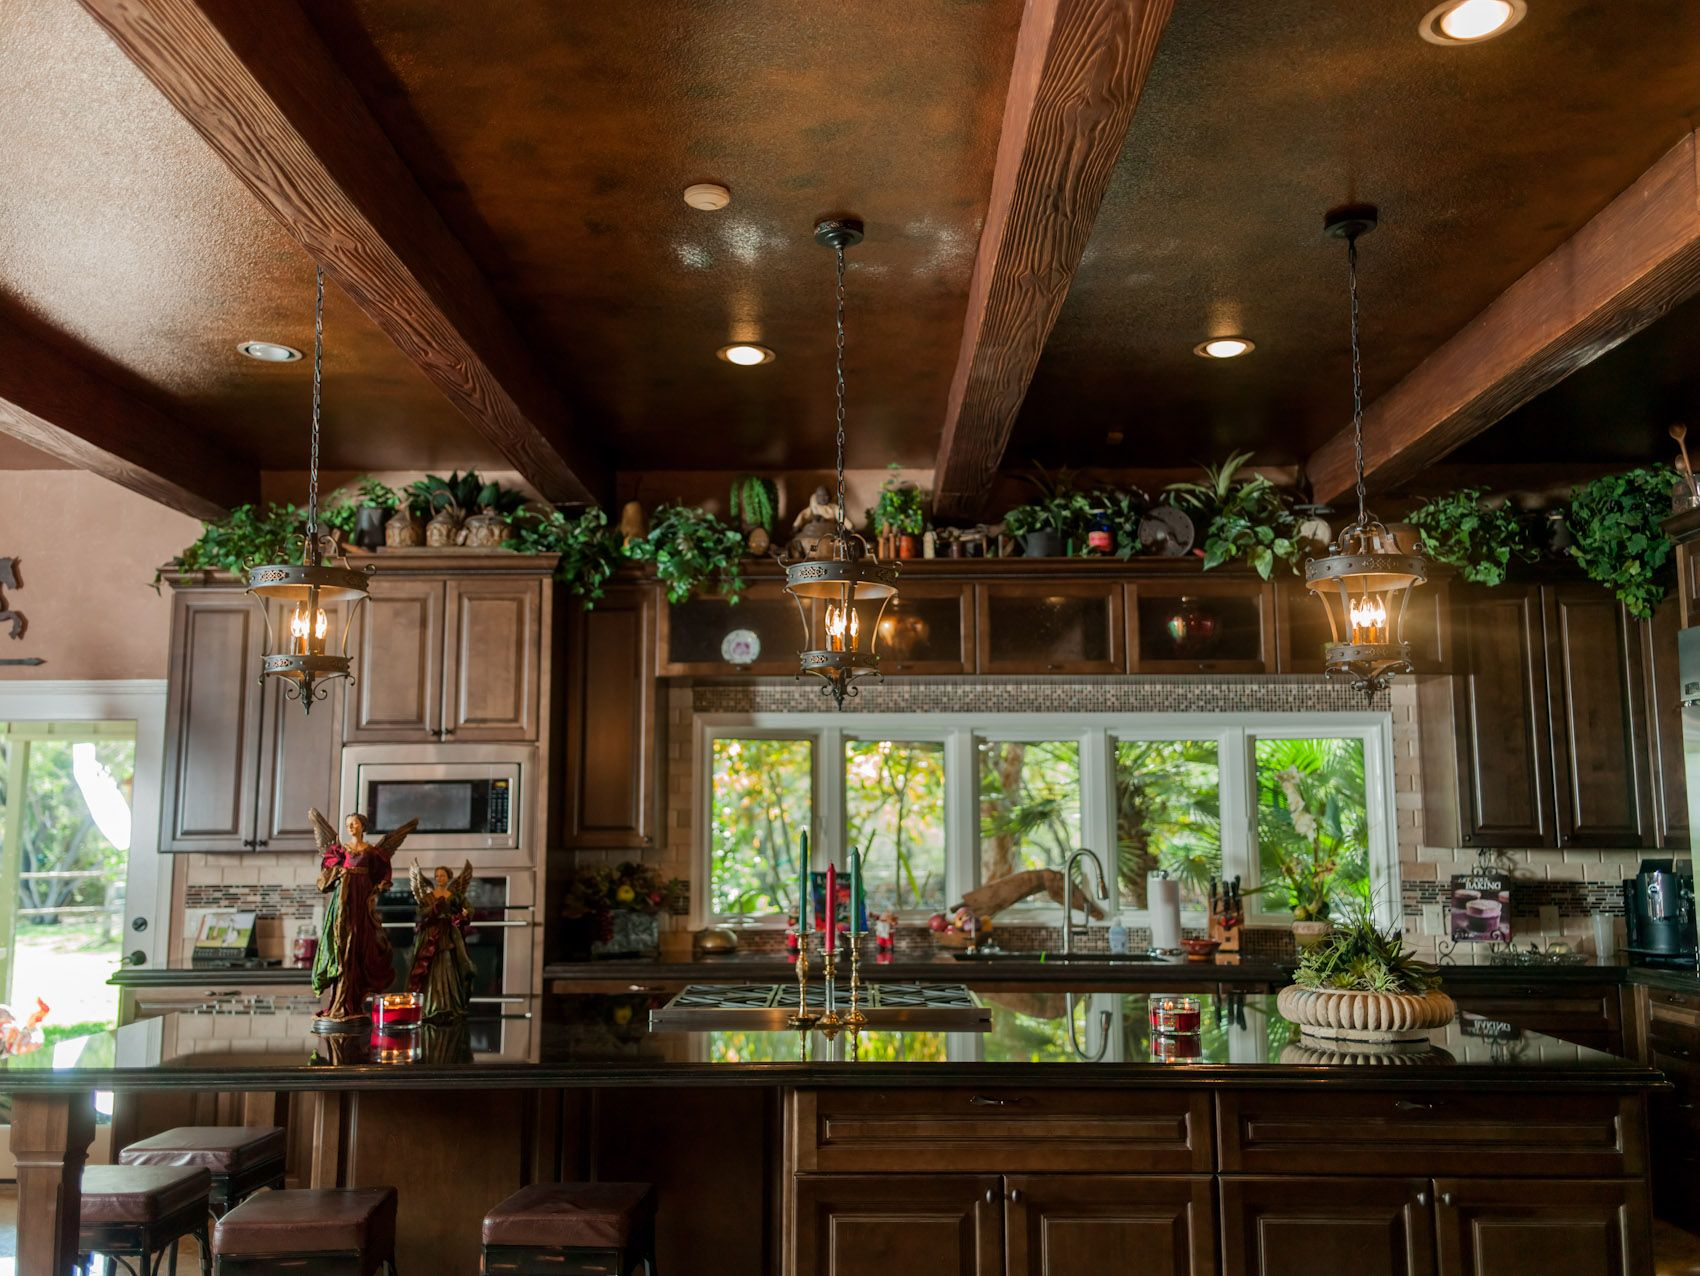 rustic kitchen island pendant lighting rustic pendant lighting kitchen Kitchen island rustic pendant lighting Home Kitchen Pinterest